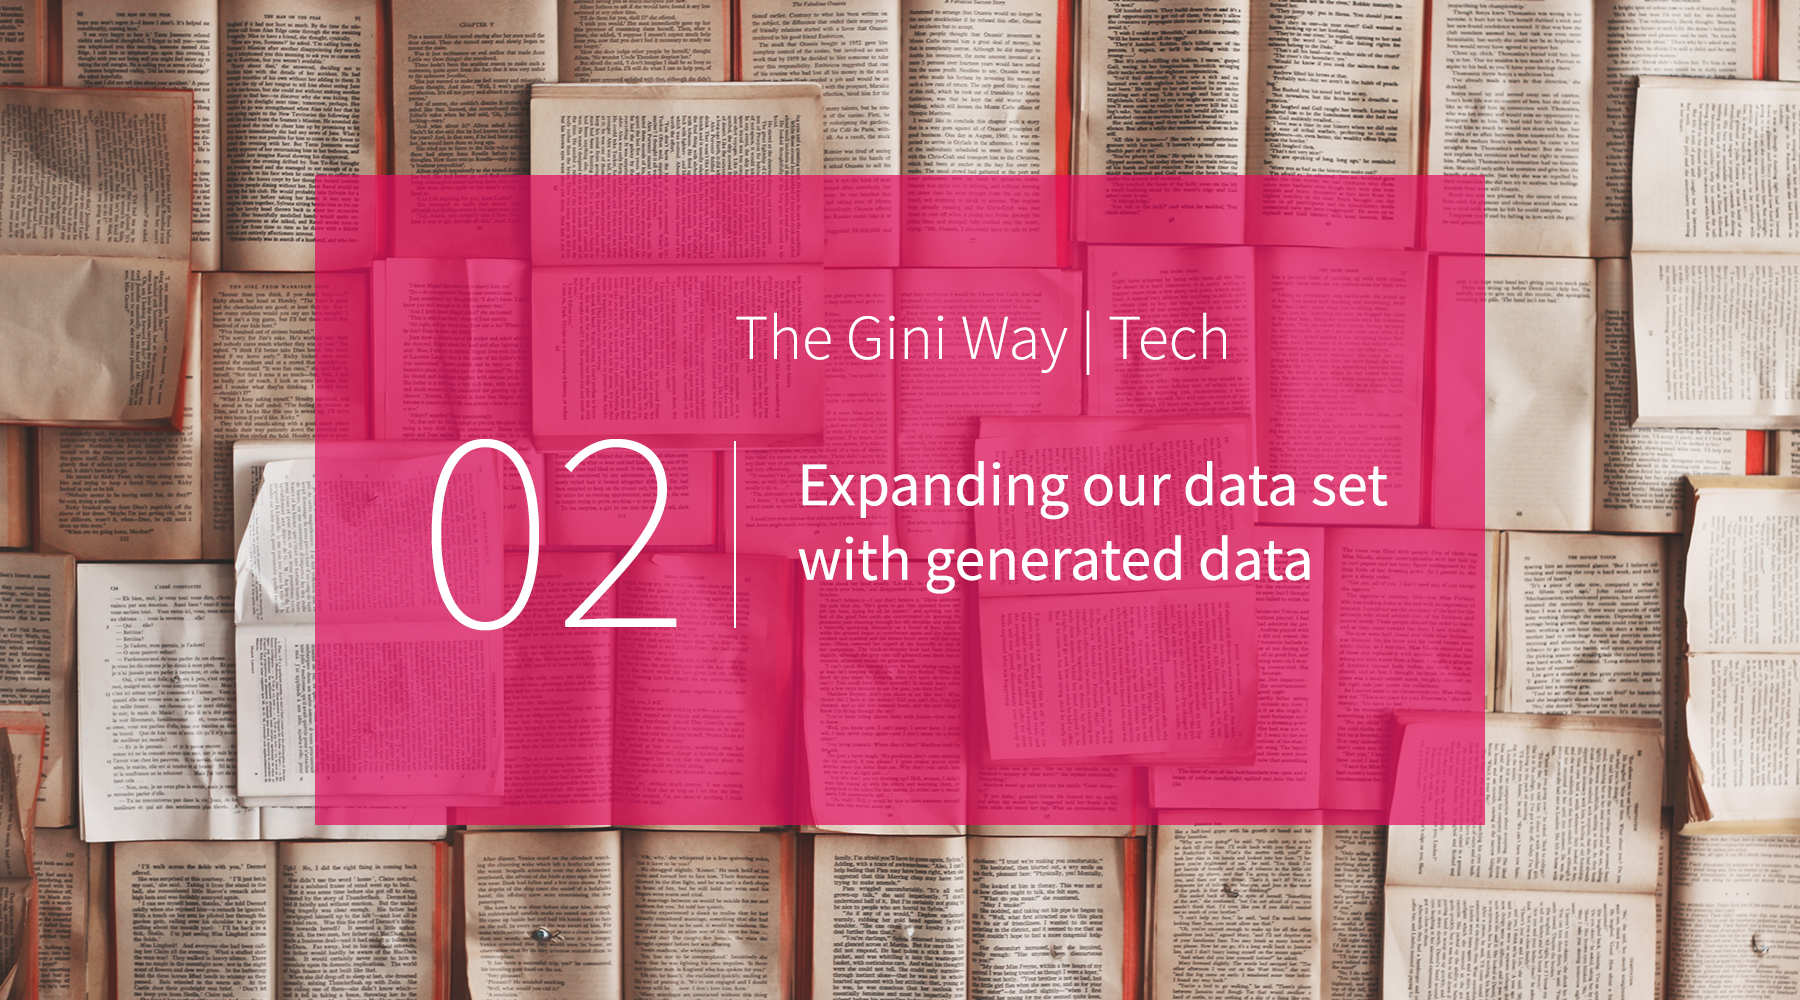 Expanding our data set with generated data - The Gini Way